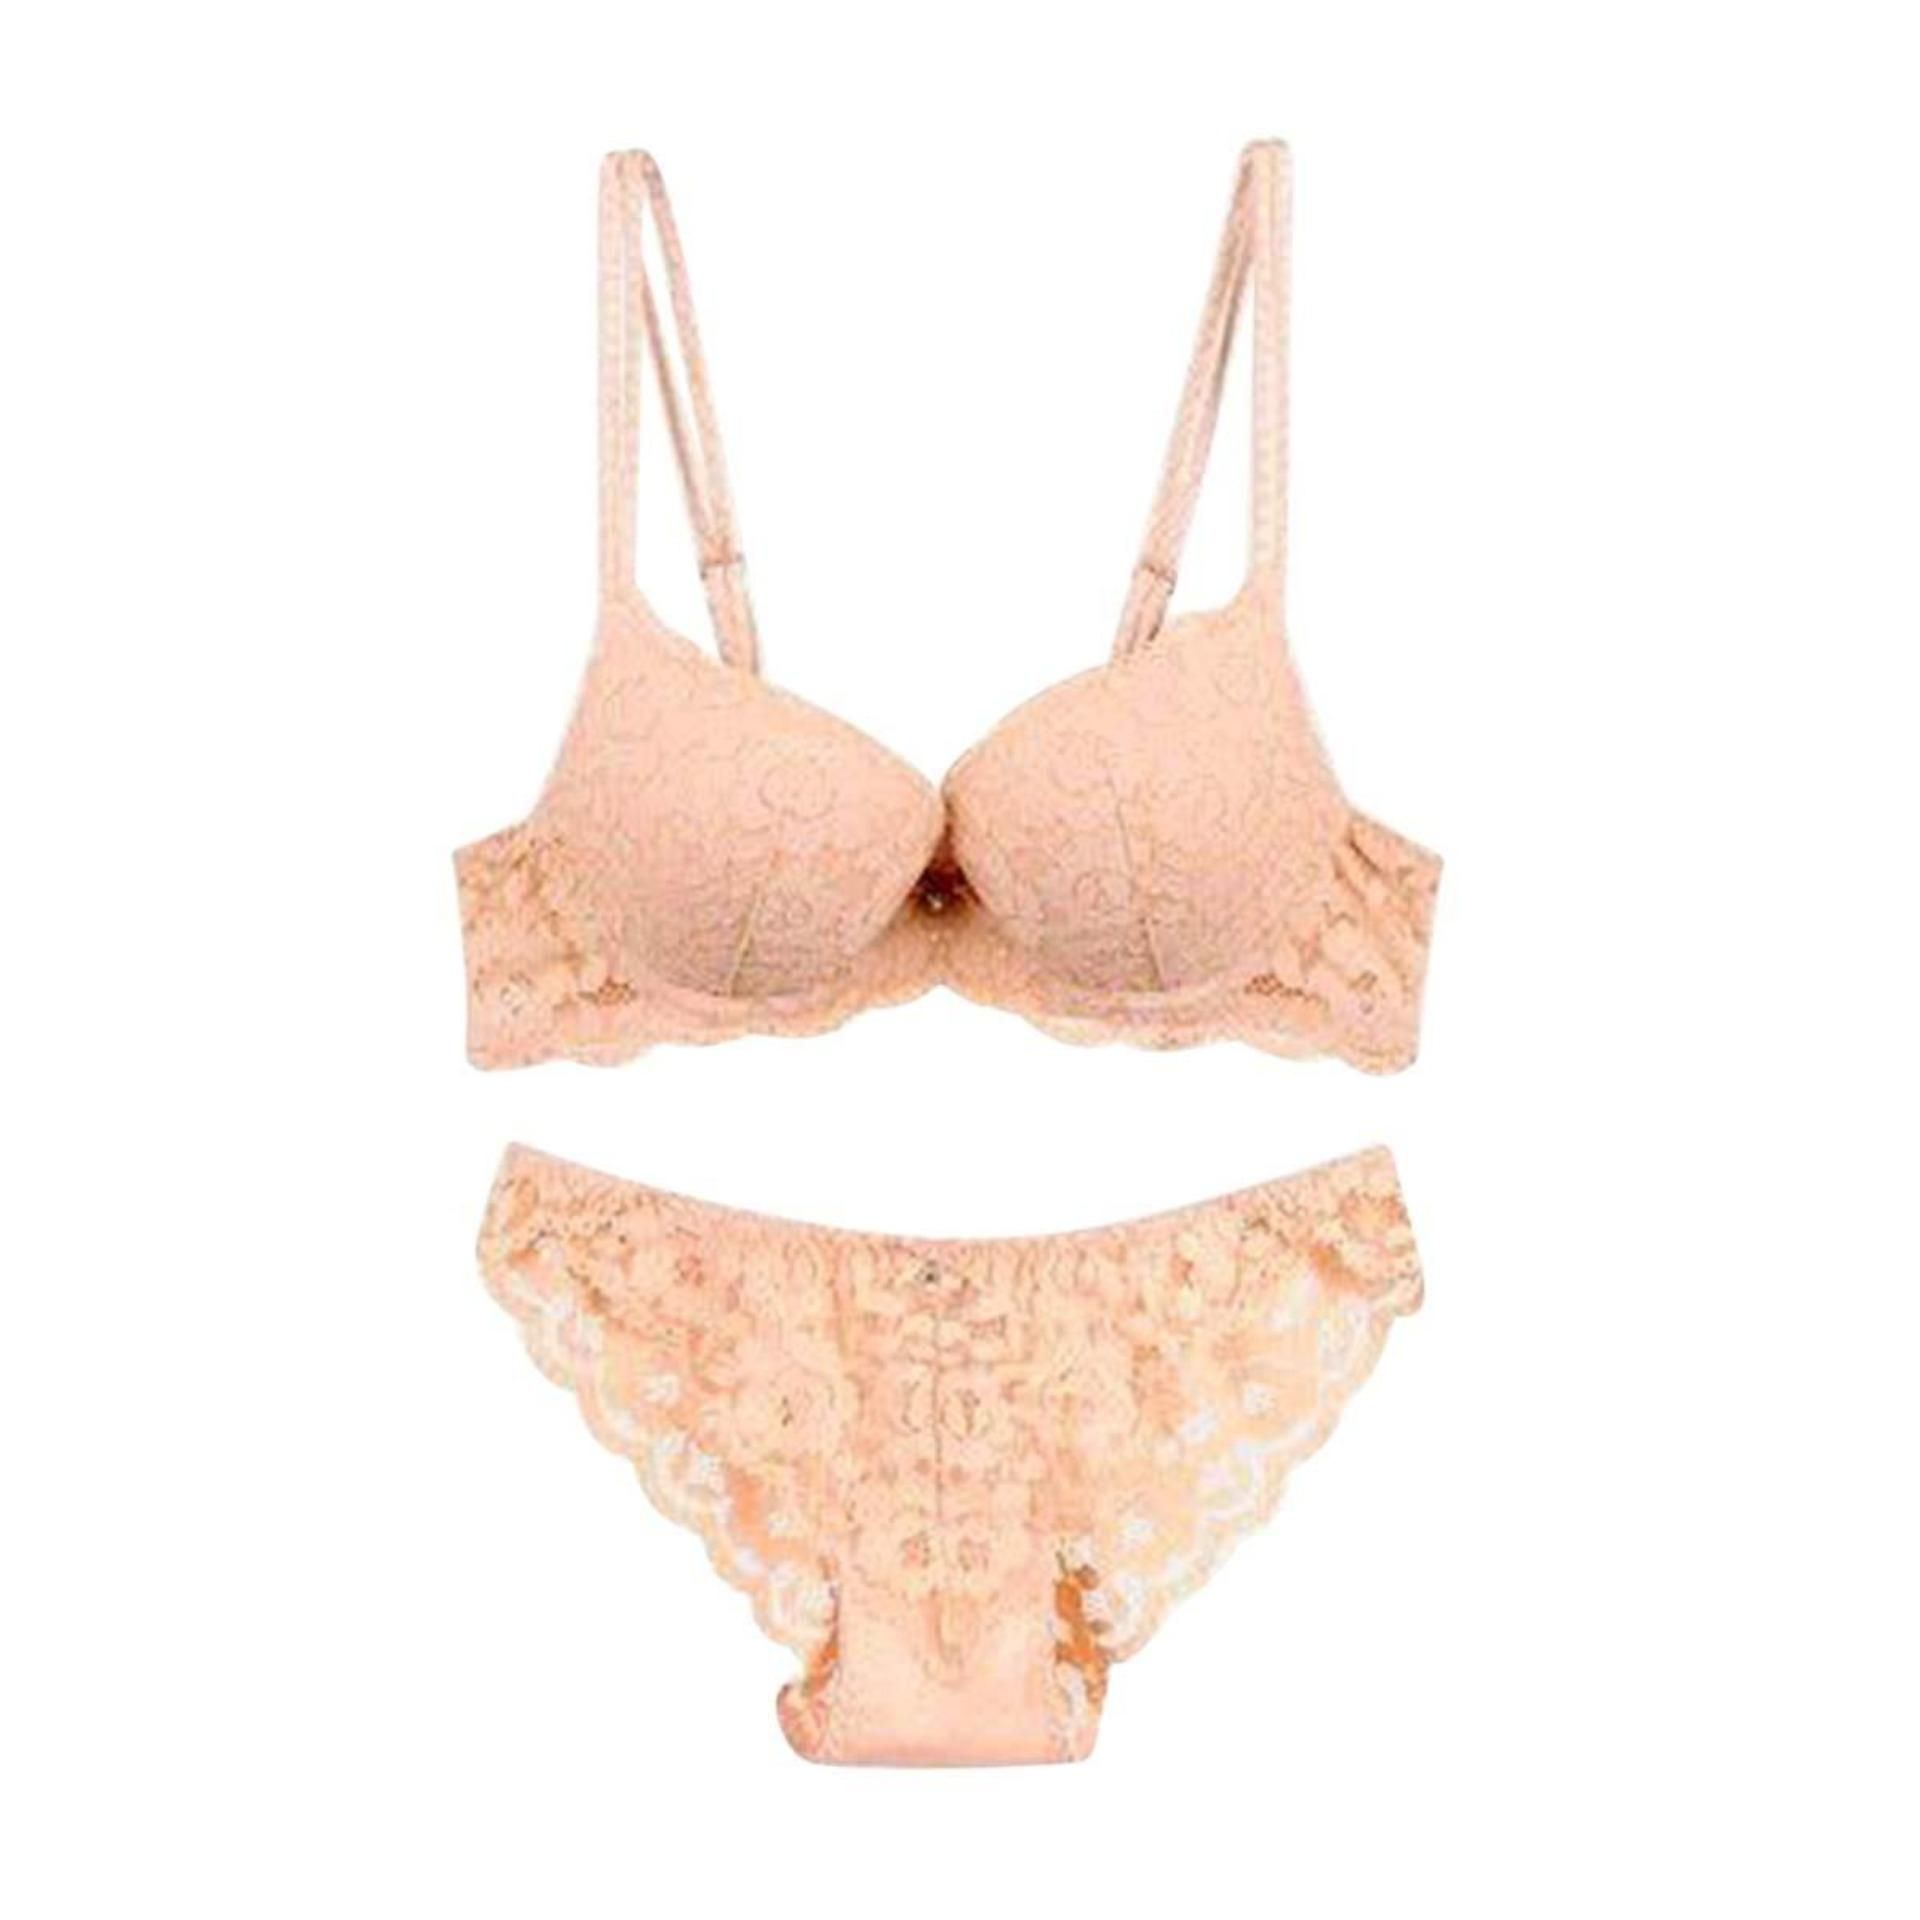 9503f7f81511 Sexy Lingerie - Buy Sexy Lingerie at Best Price in Bangladesh | www.daraz .com.bd